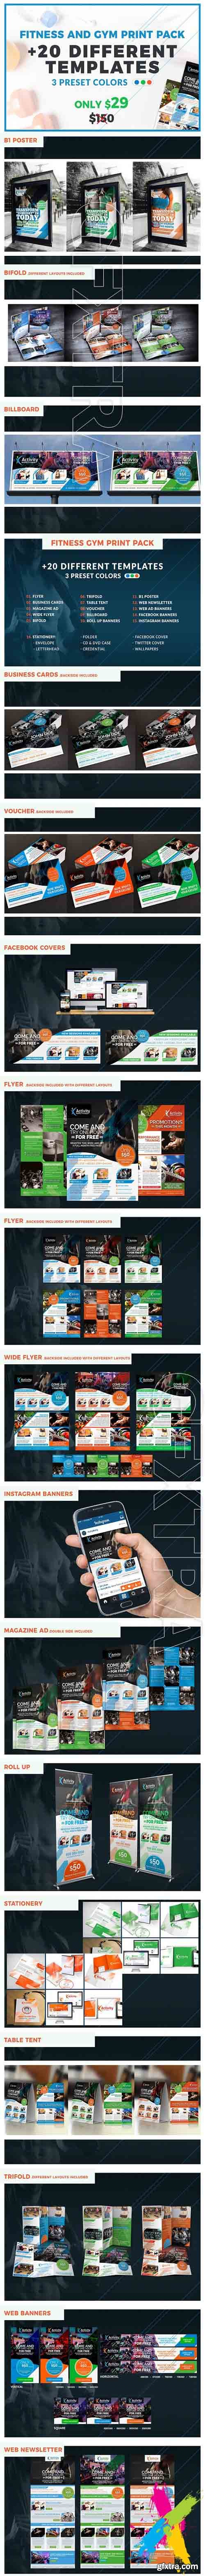 Cm fitness gym business print pack 1672025 gfxtra pinterest cm fitness gym business print pack 1672025 reheart Images